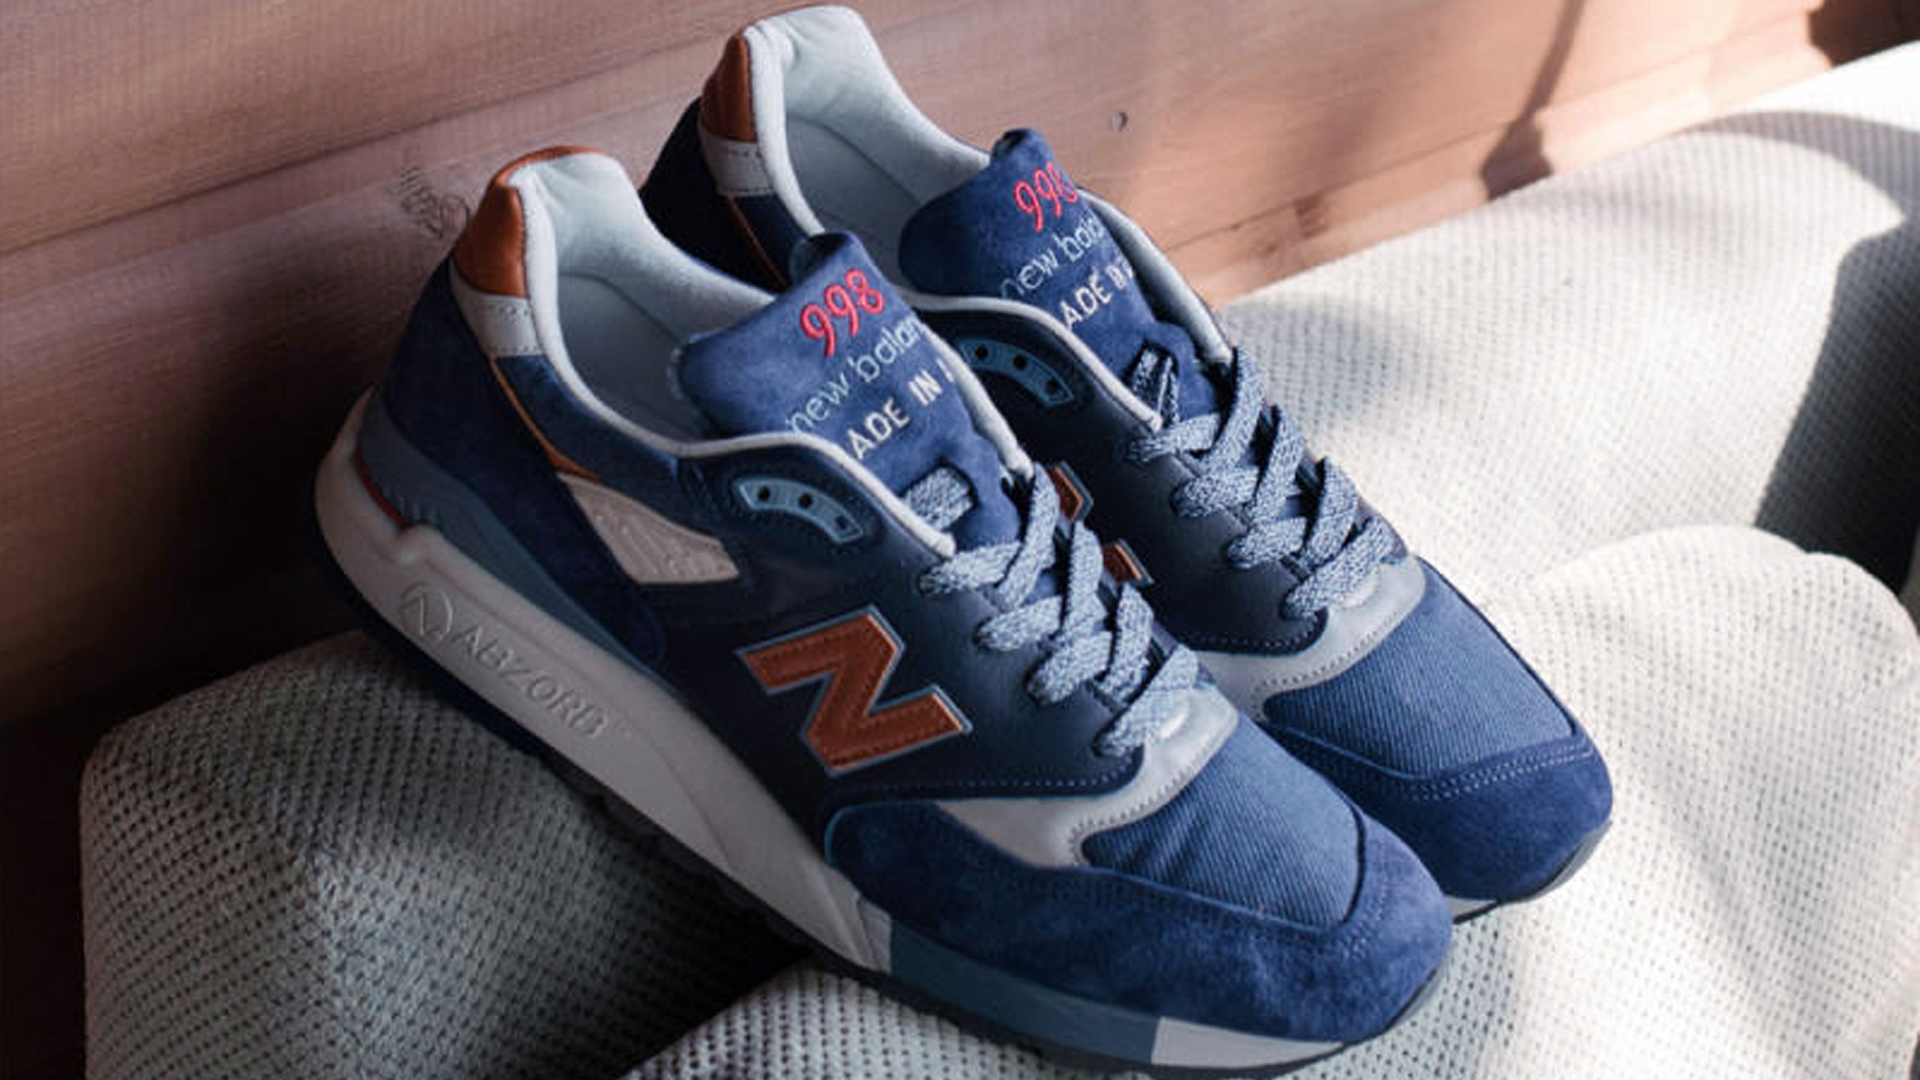 SNEAK PEEK EXCLUSIGVELY LAUNCHES THE USA DISTINCT RETRO SKI COLLECTION 998 & 990